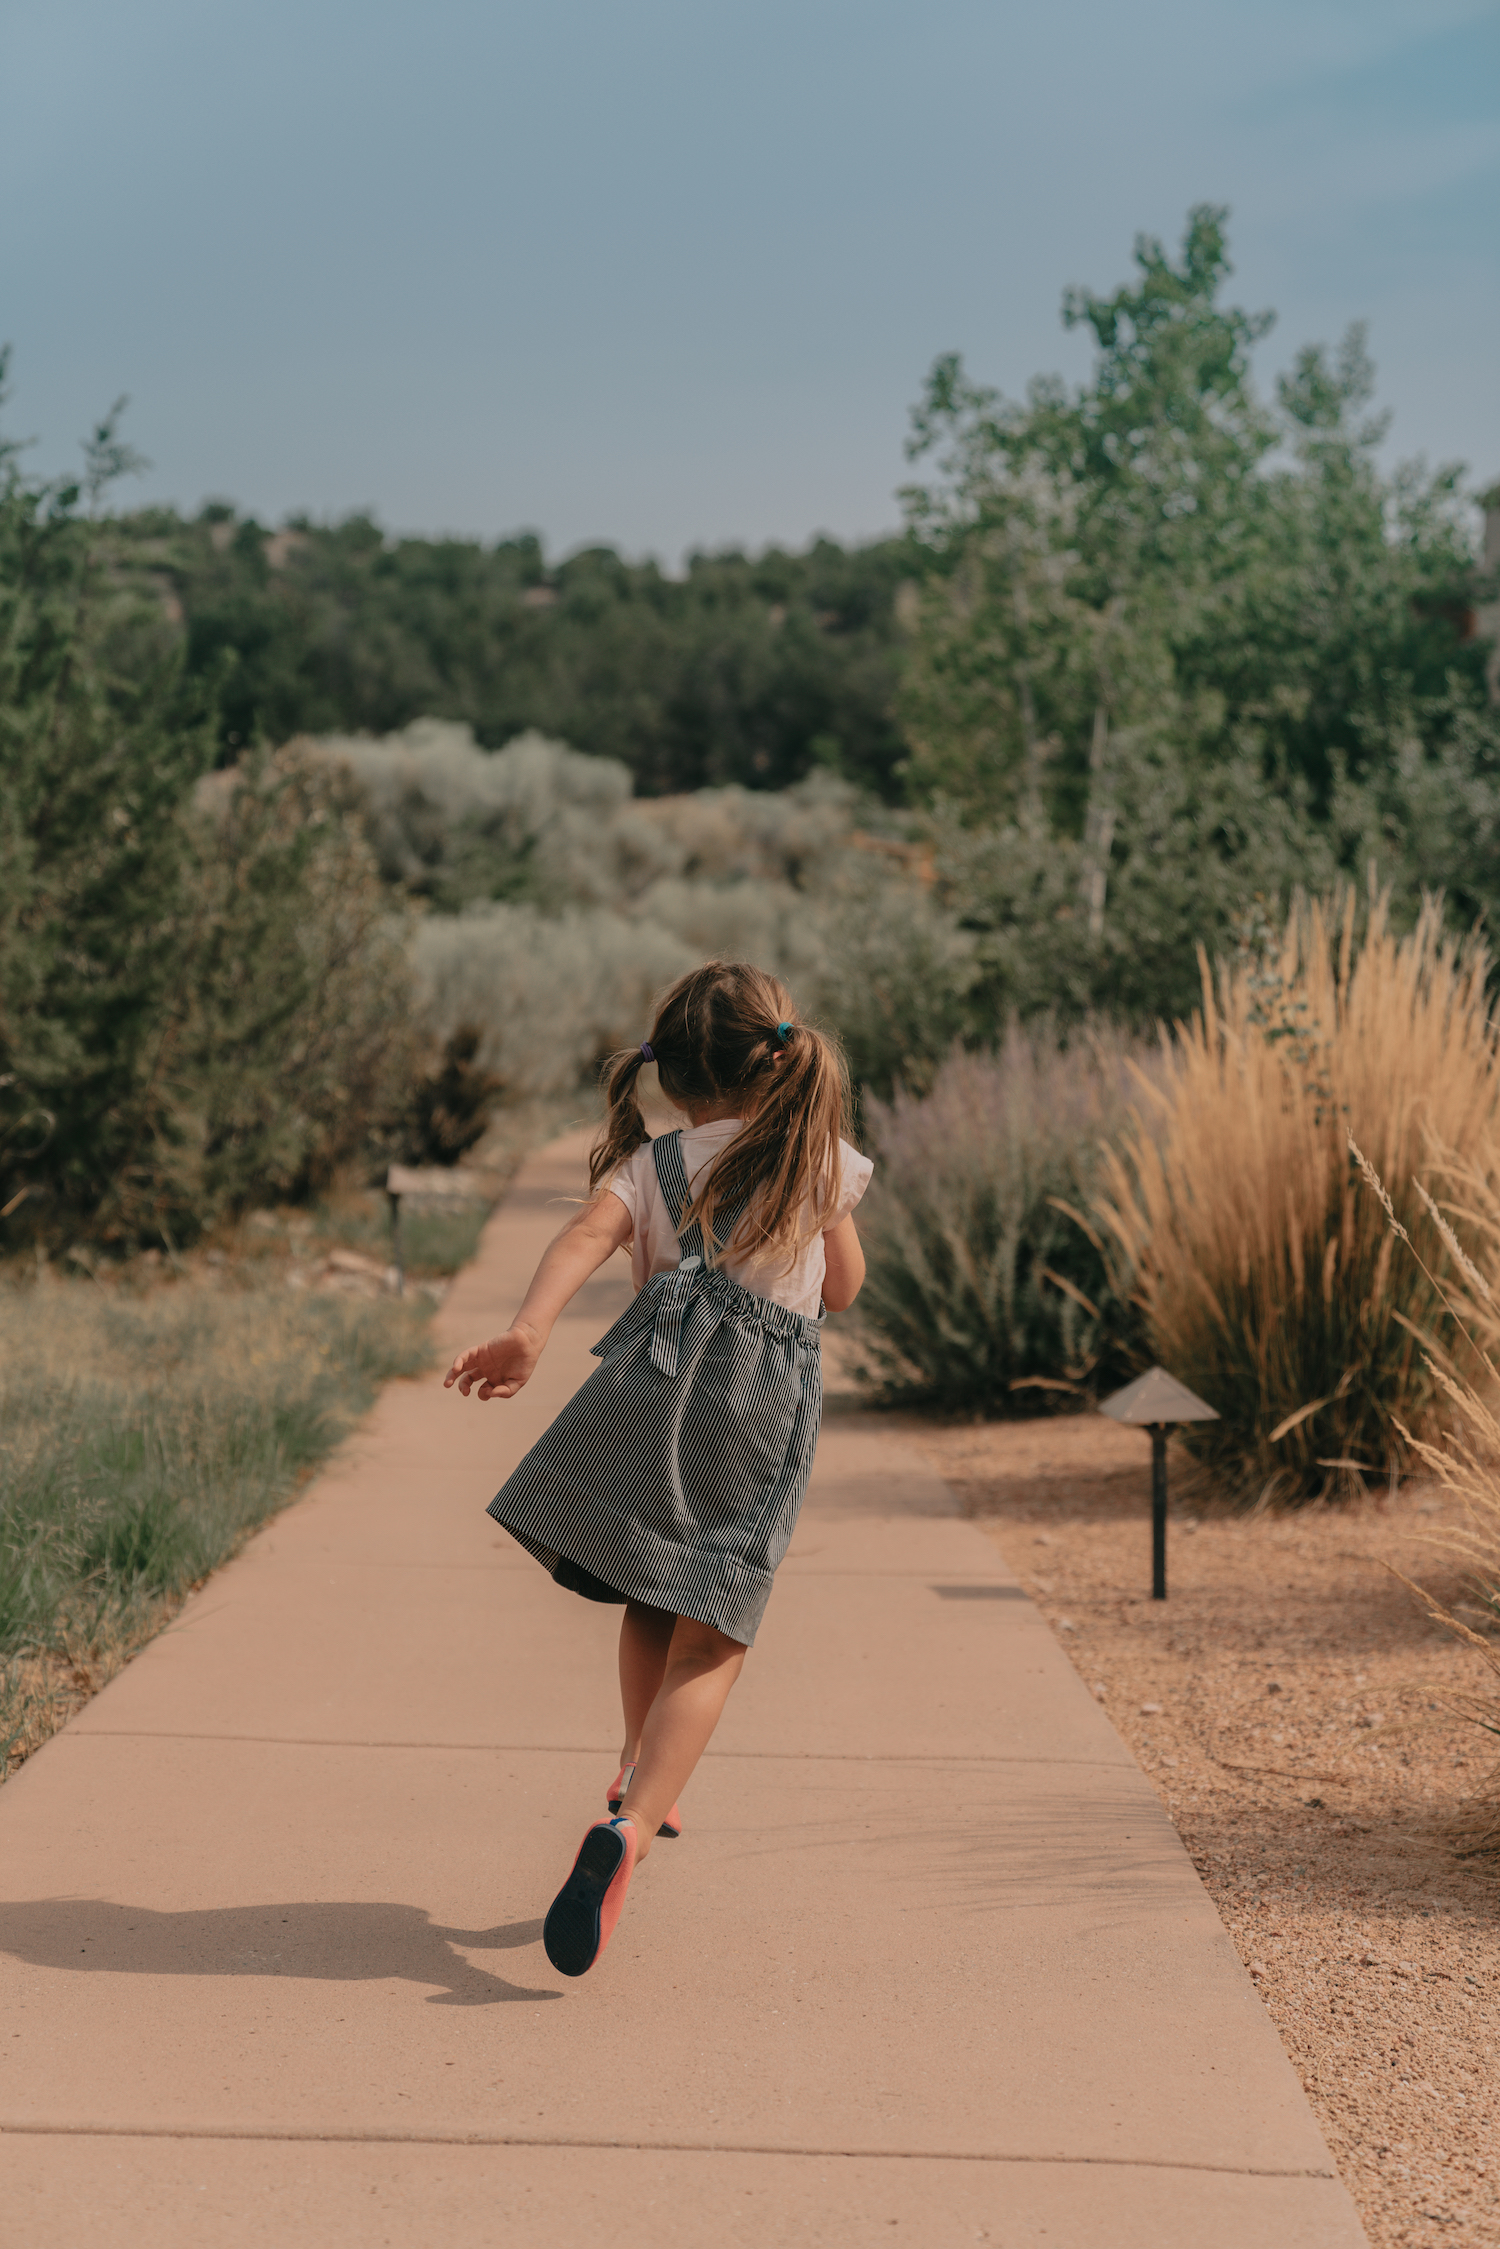 A little girl running along a path